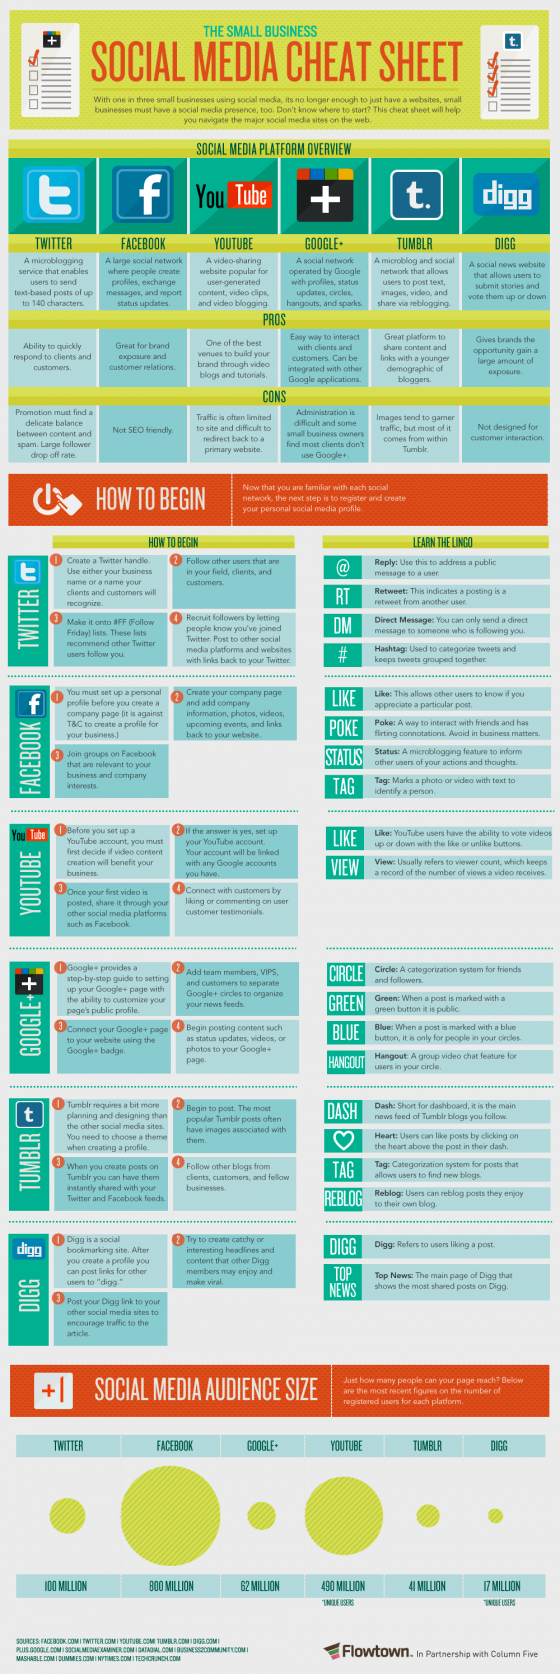 Social-Media-cheat-sheet1